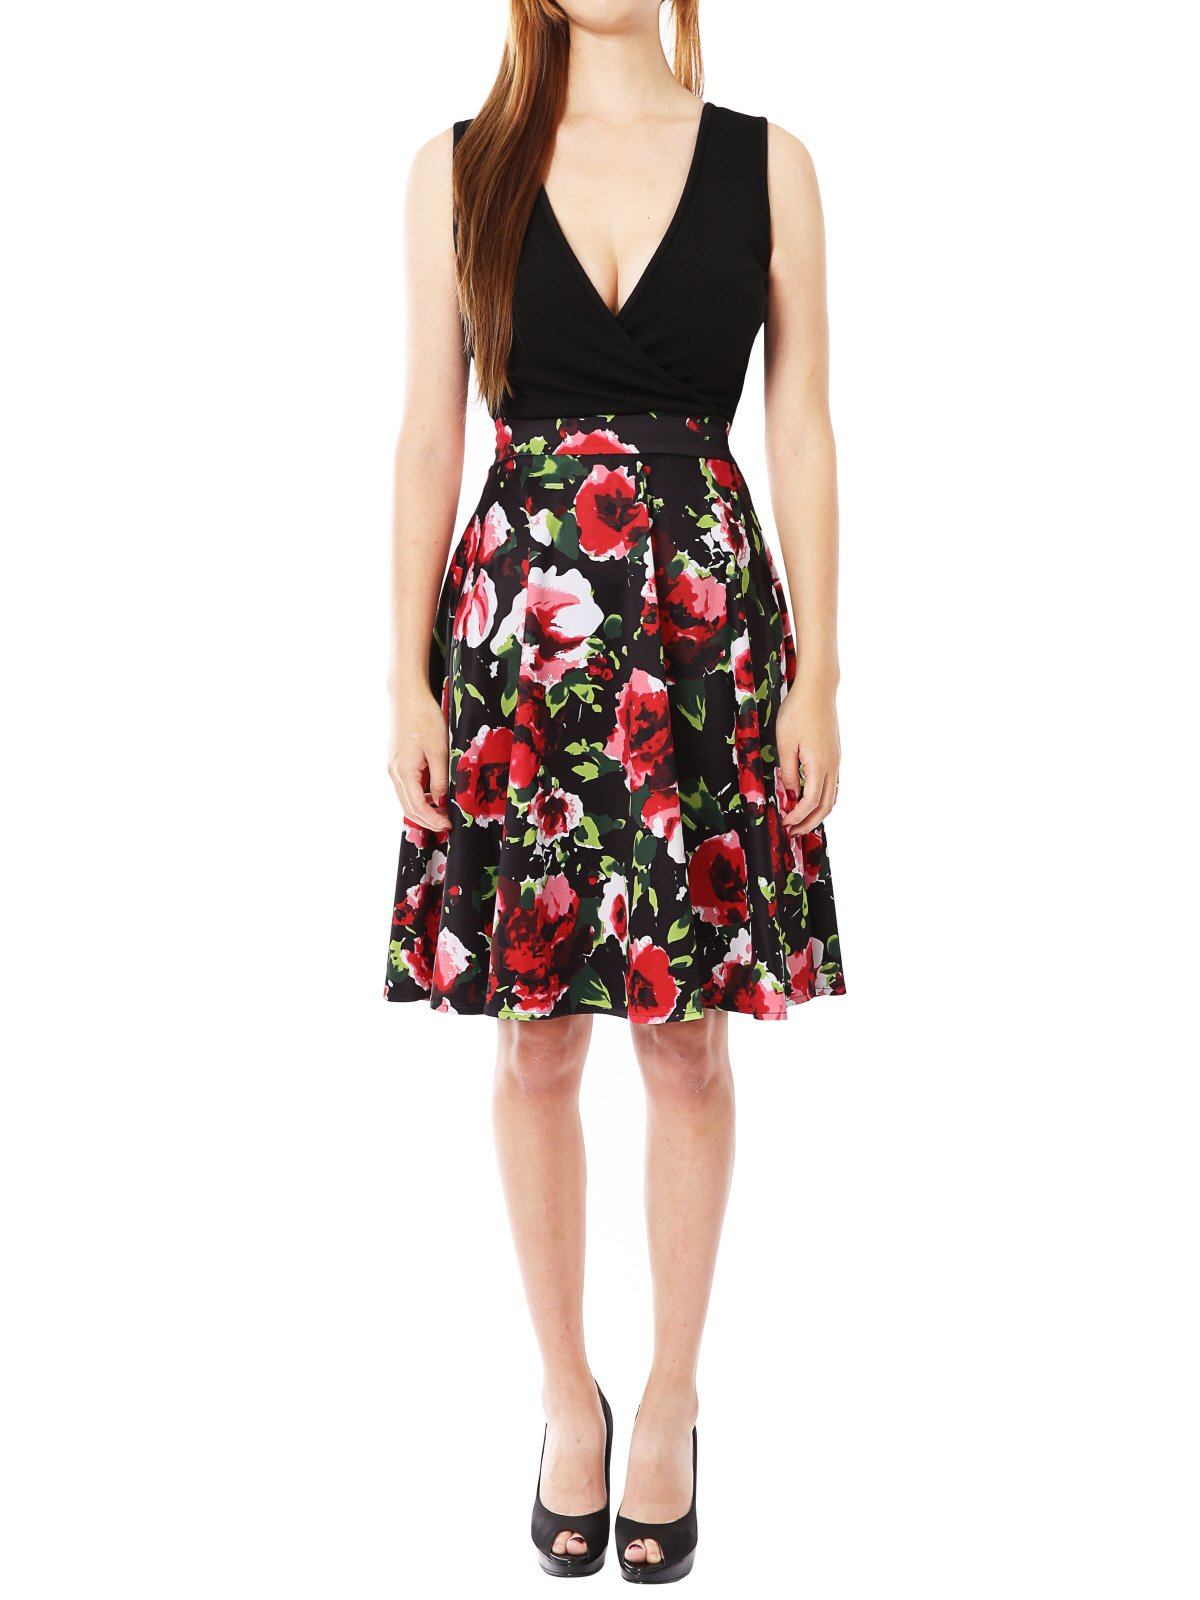 JayJay Women Vintage Casual Flower Print Stretchy Sleeveless Midi Wrap Dress,Red,M